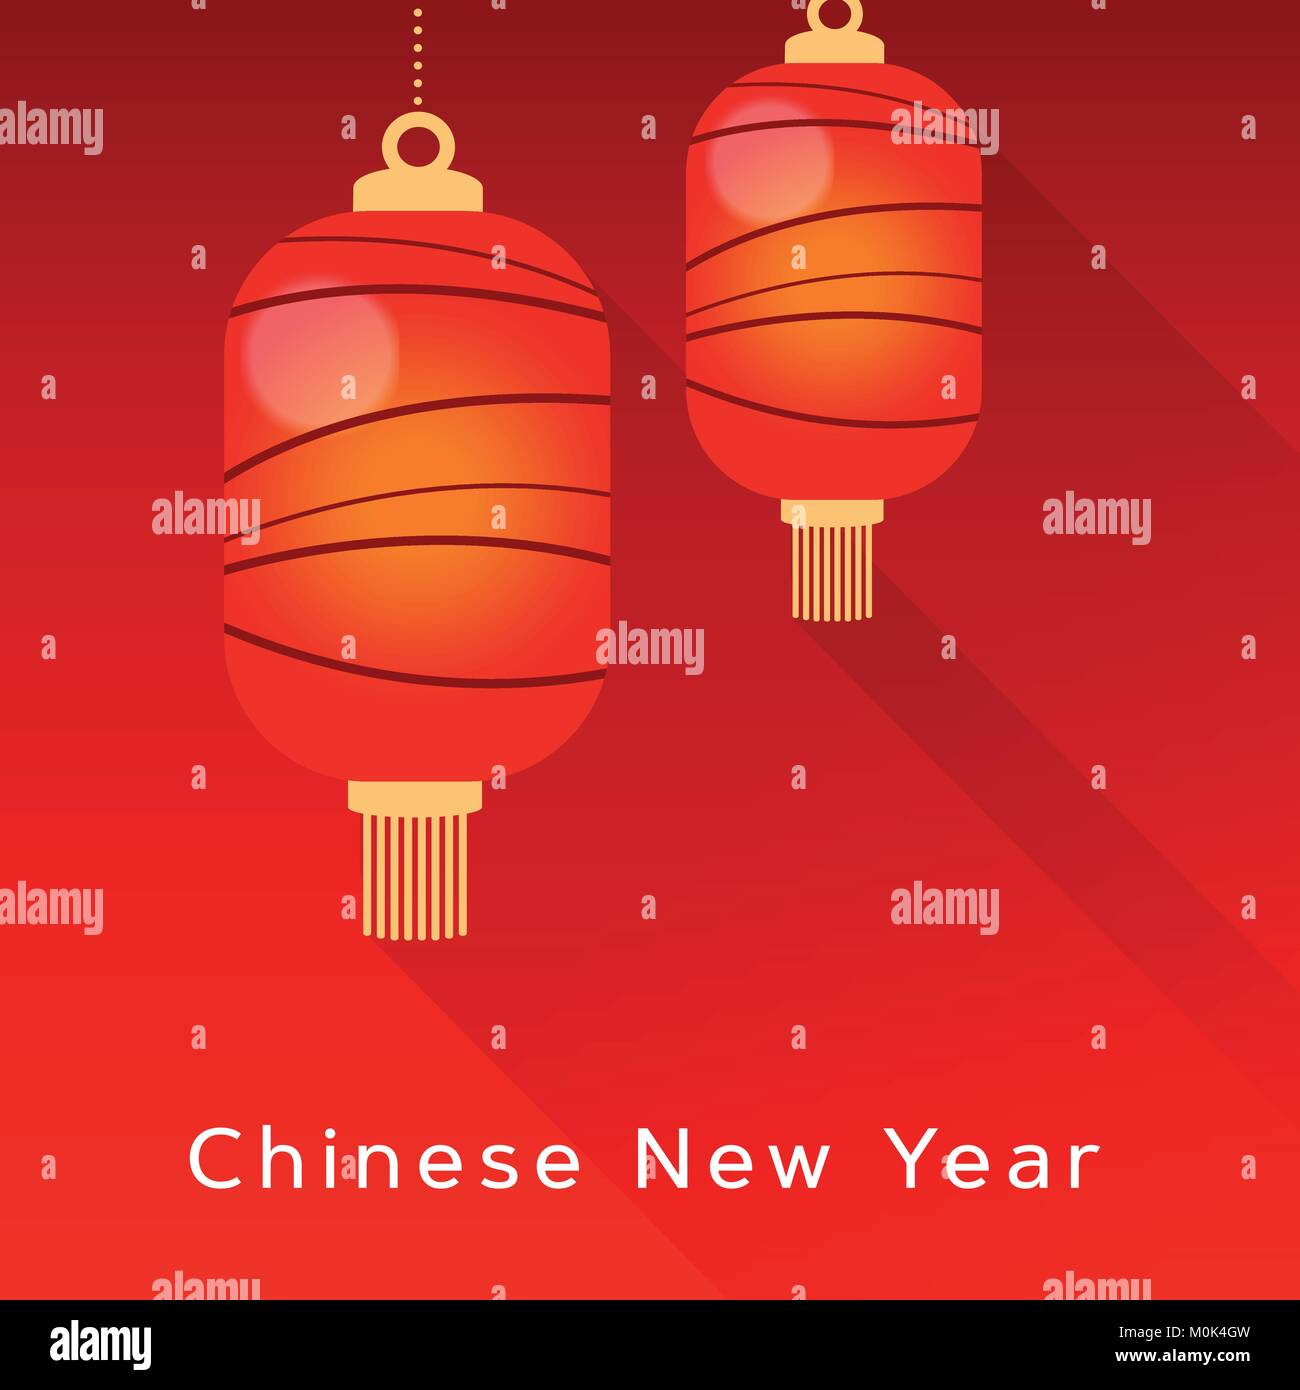 Chinese New Year Greeting Card Invitation With Hanging Red Lanterns